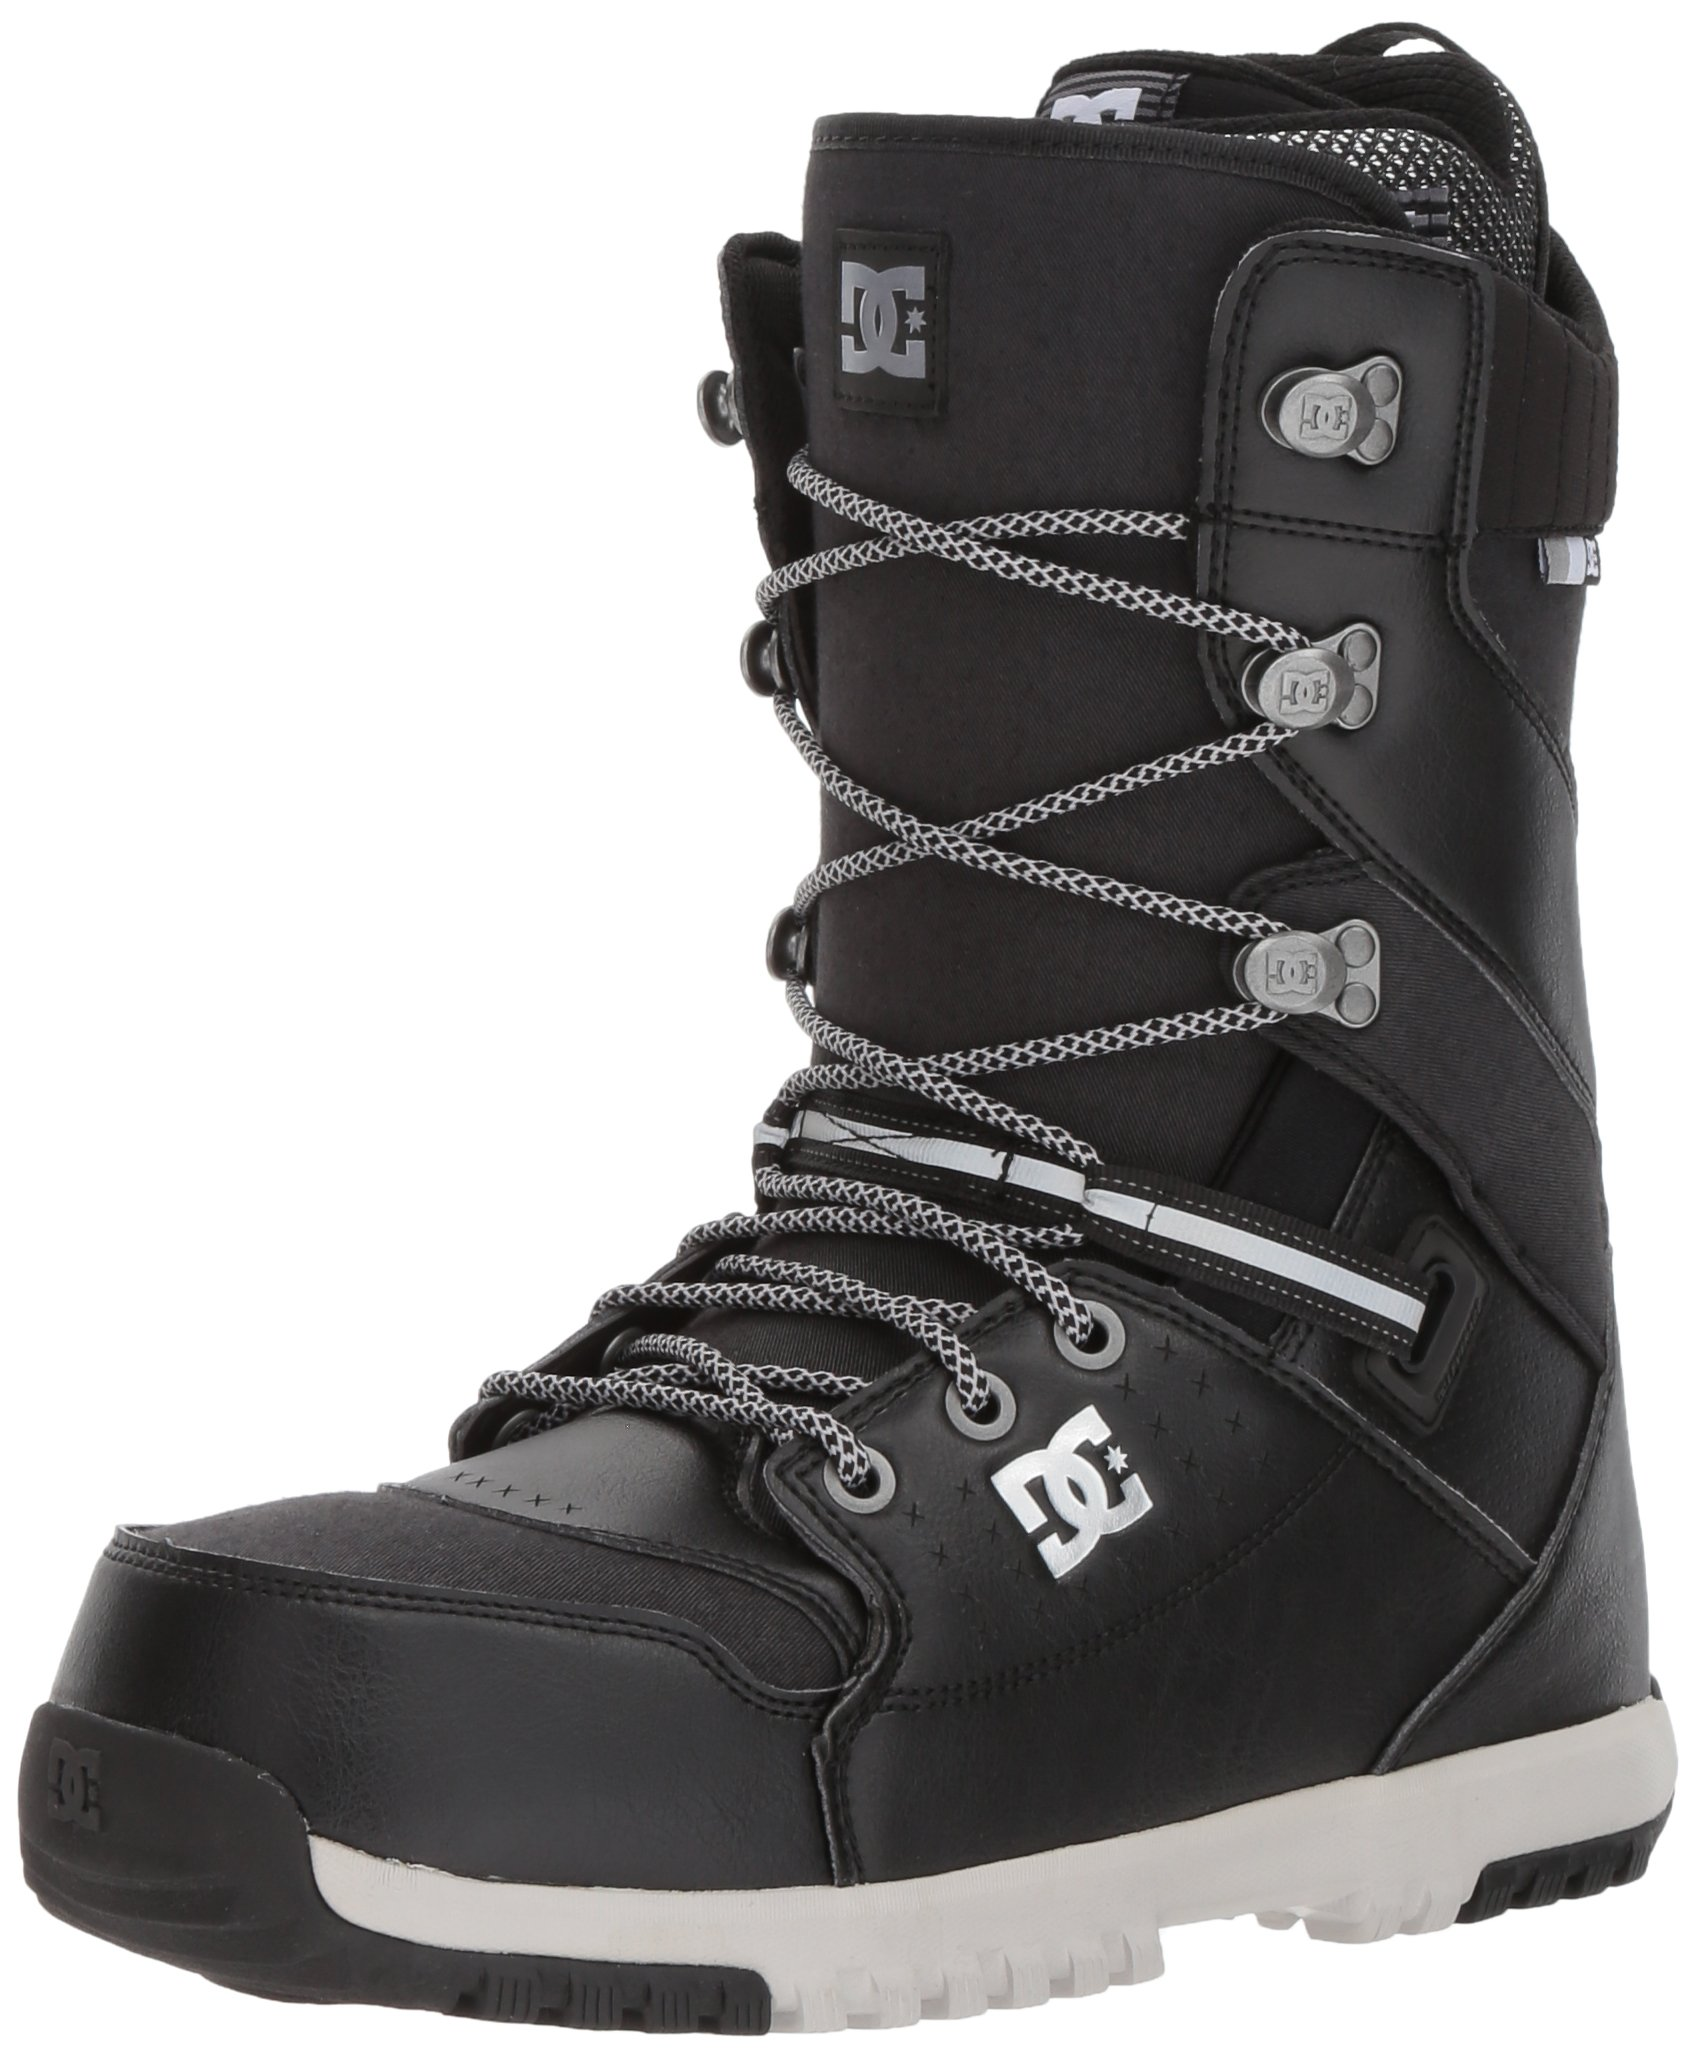 DC Men's Mutiny Lace Snowboard Boots, 10.5, Black by DC